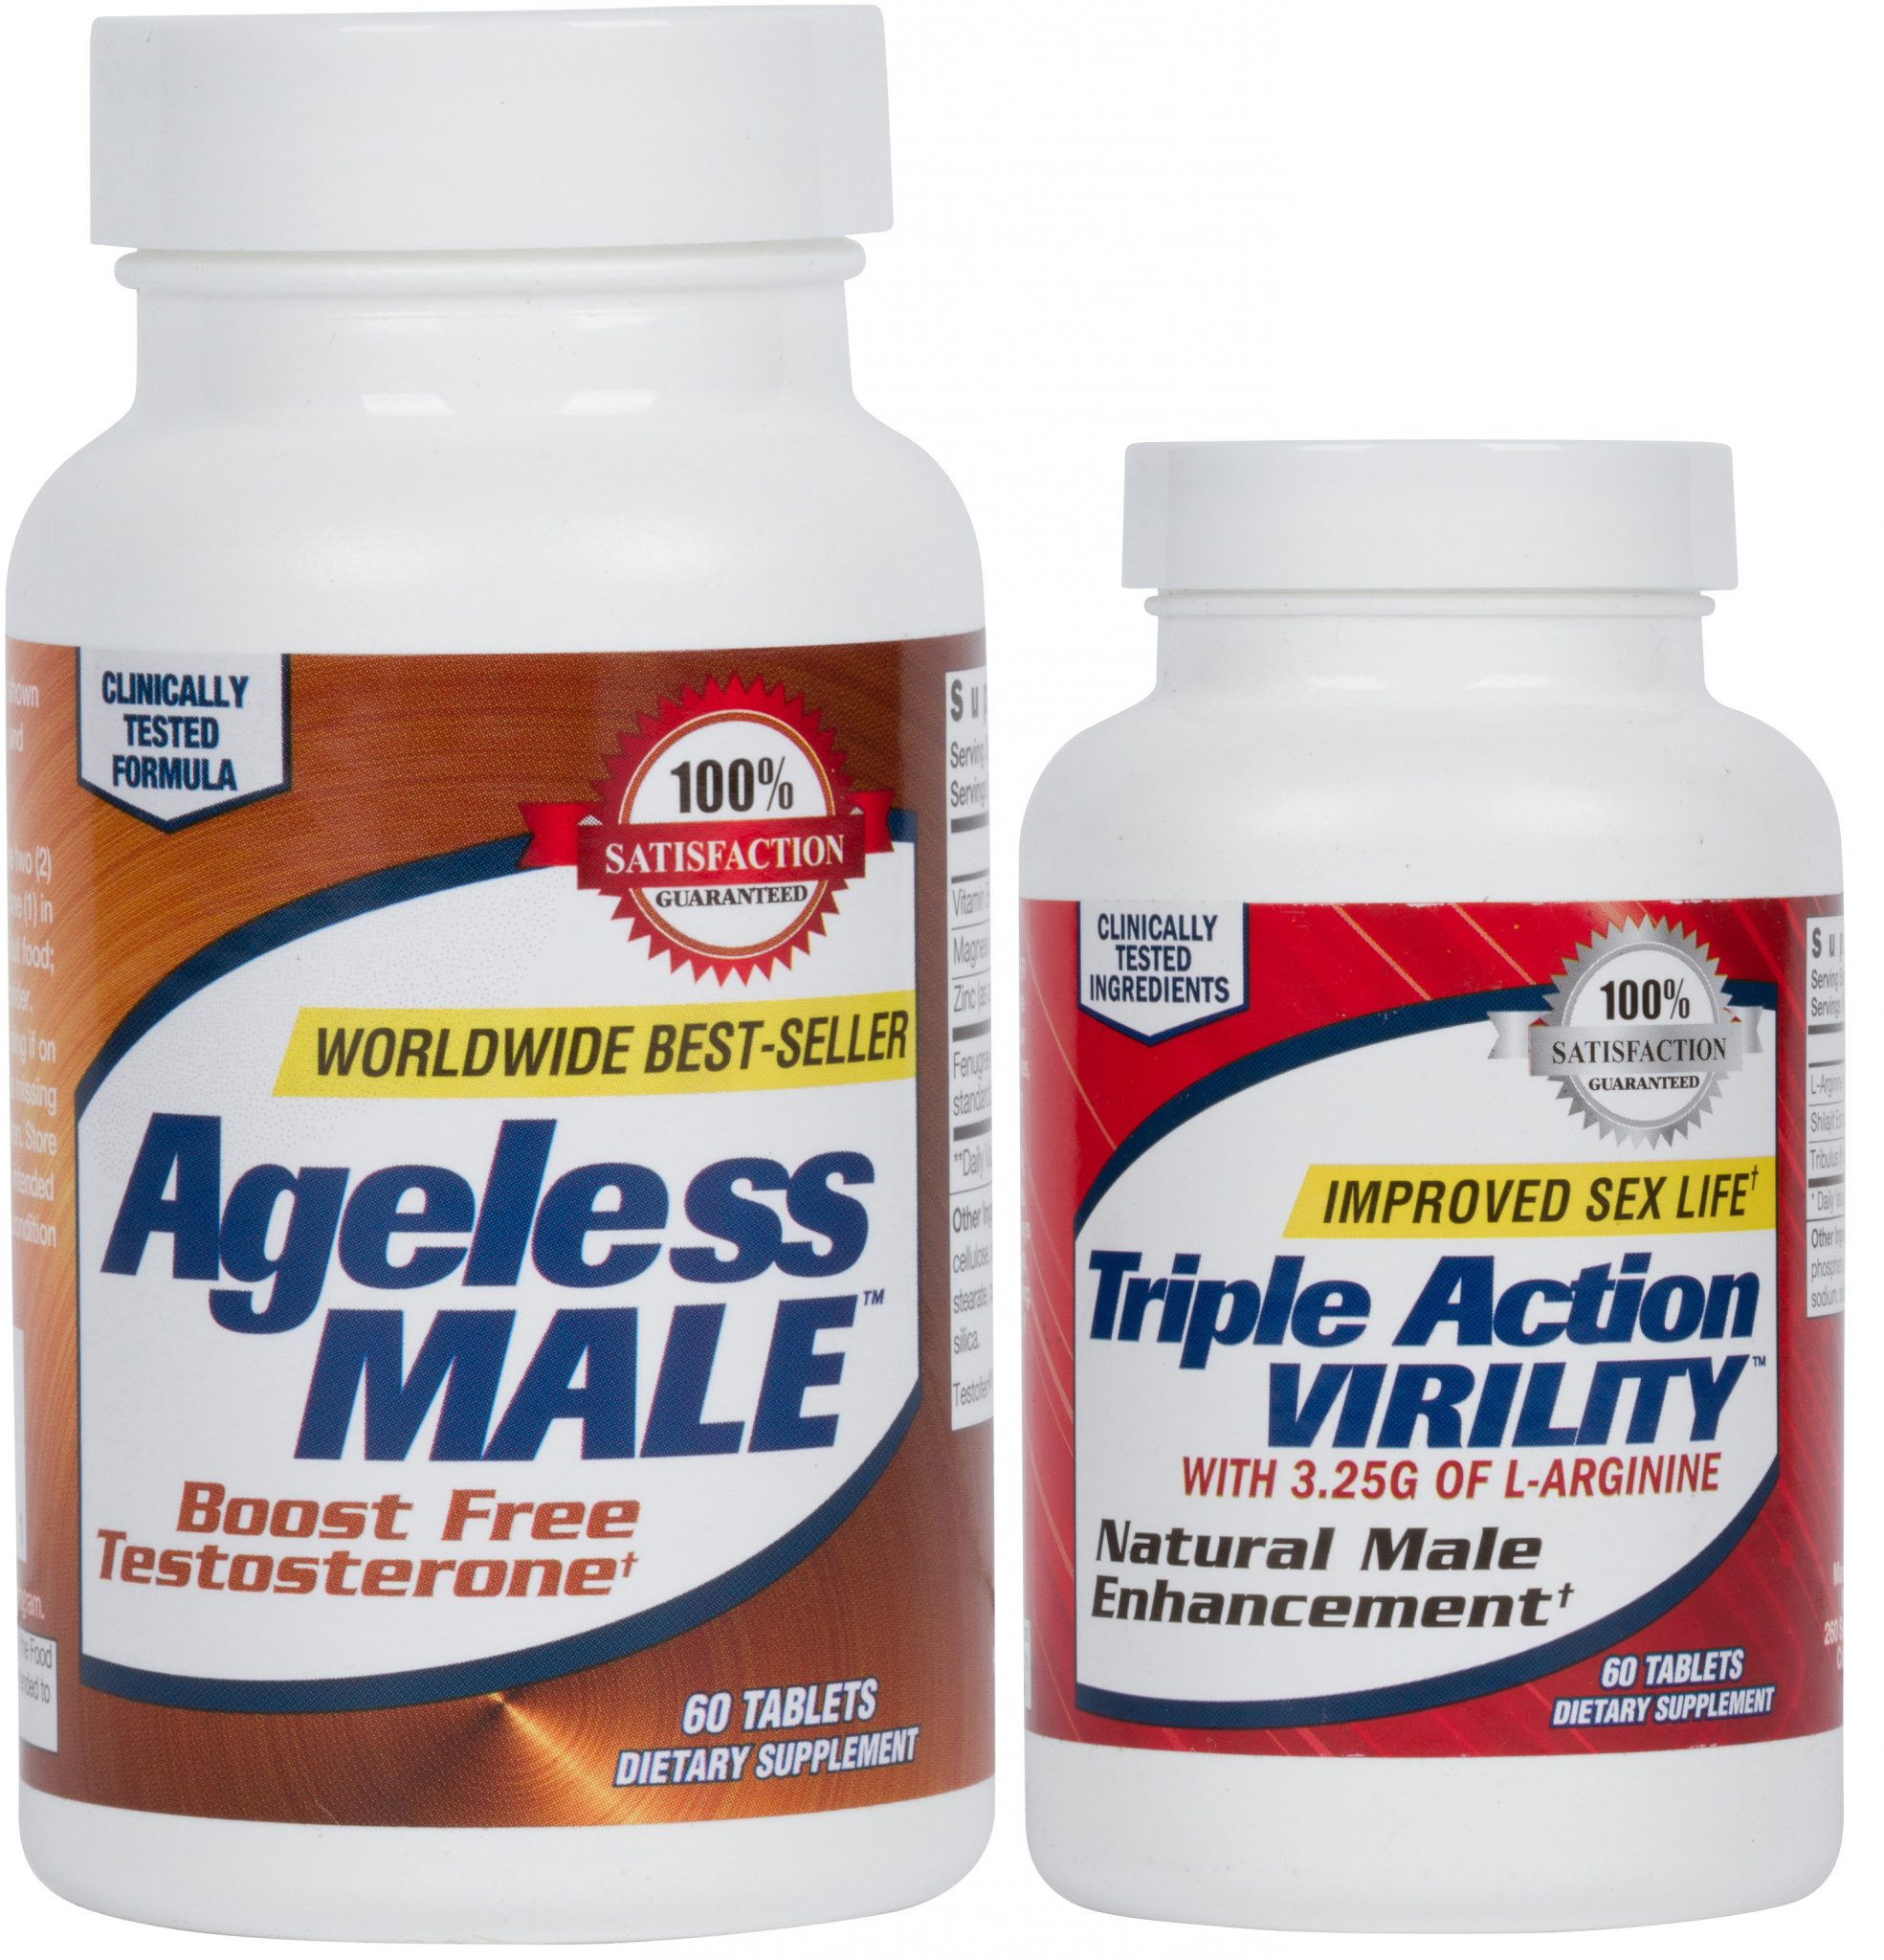 How Does Alpha Male Plus Show Results?